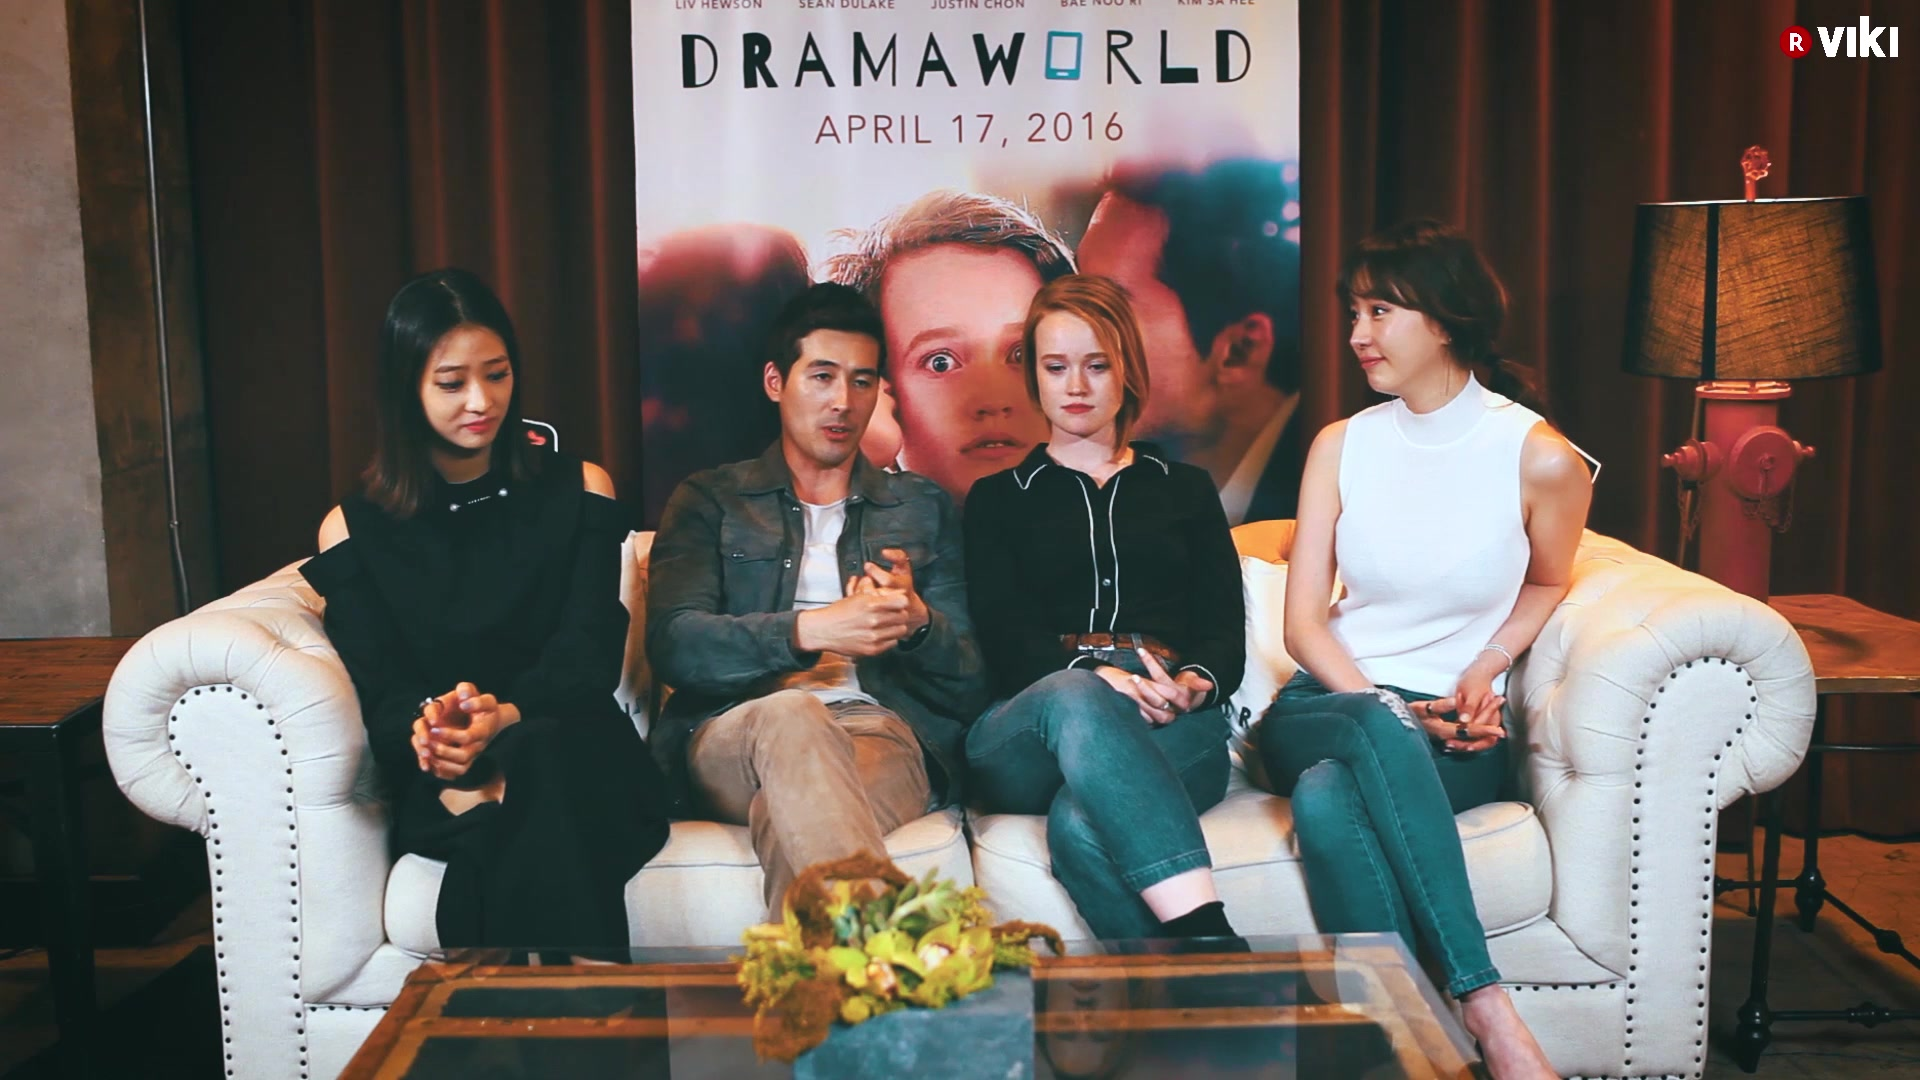 Dramaworld Cast Interview 1: Dramaworld